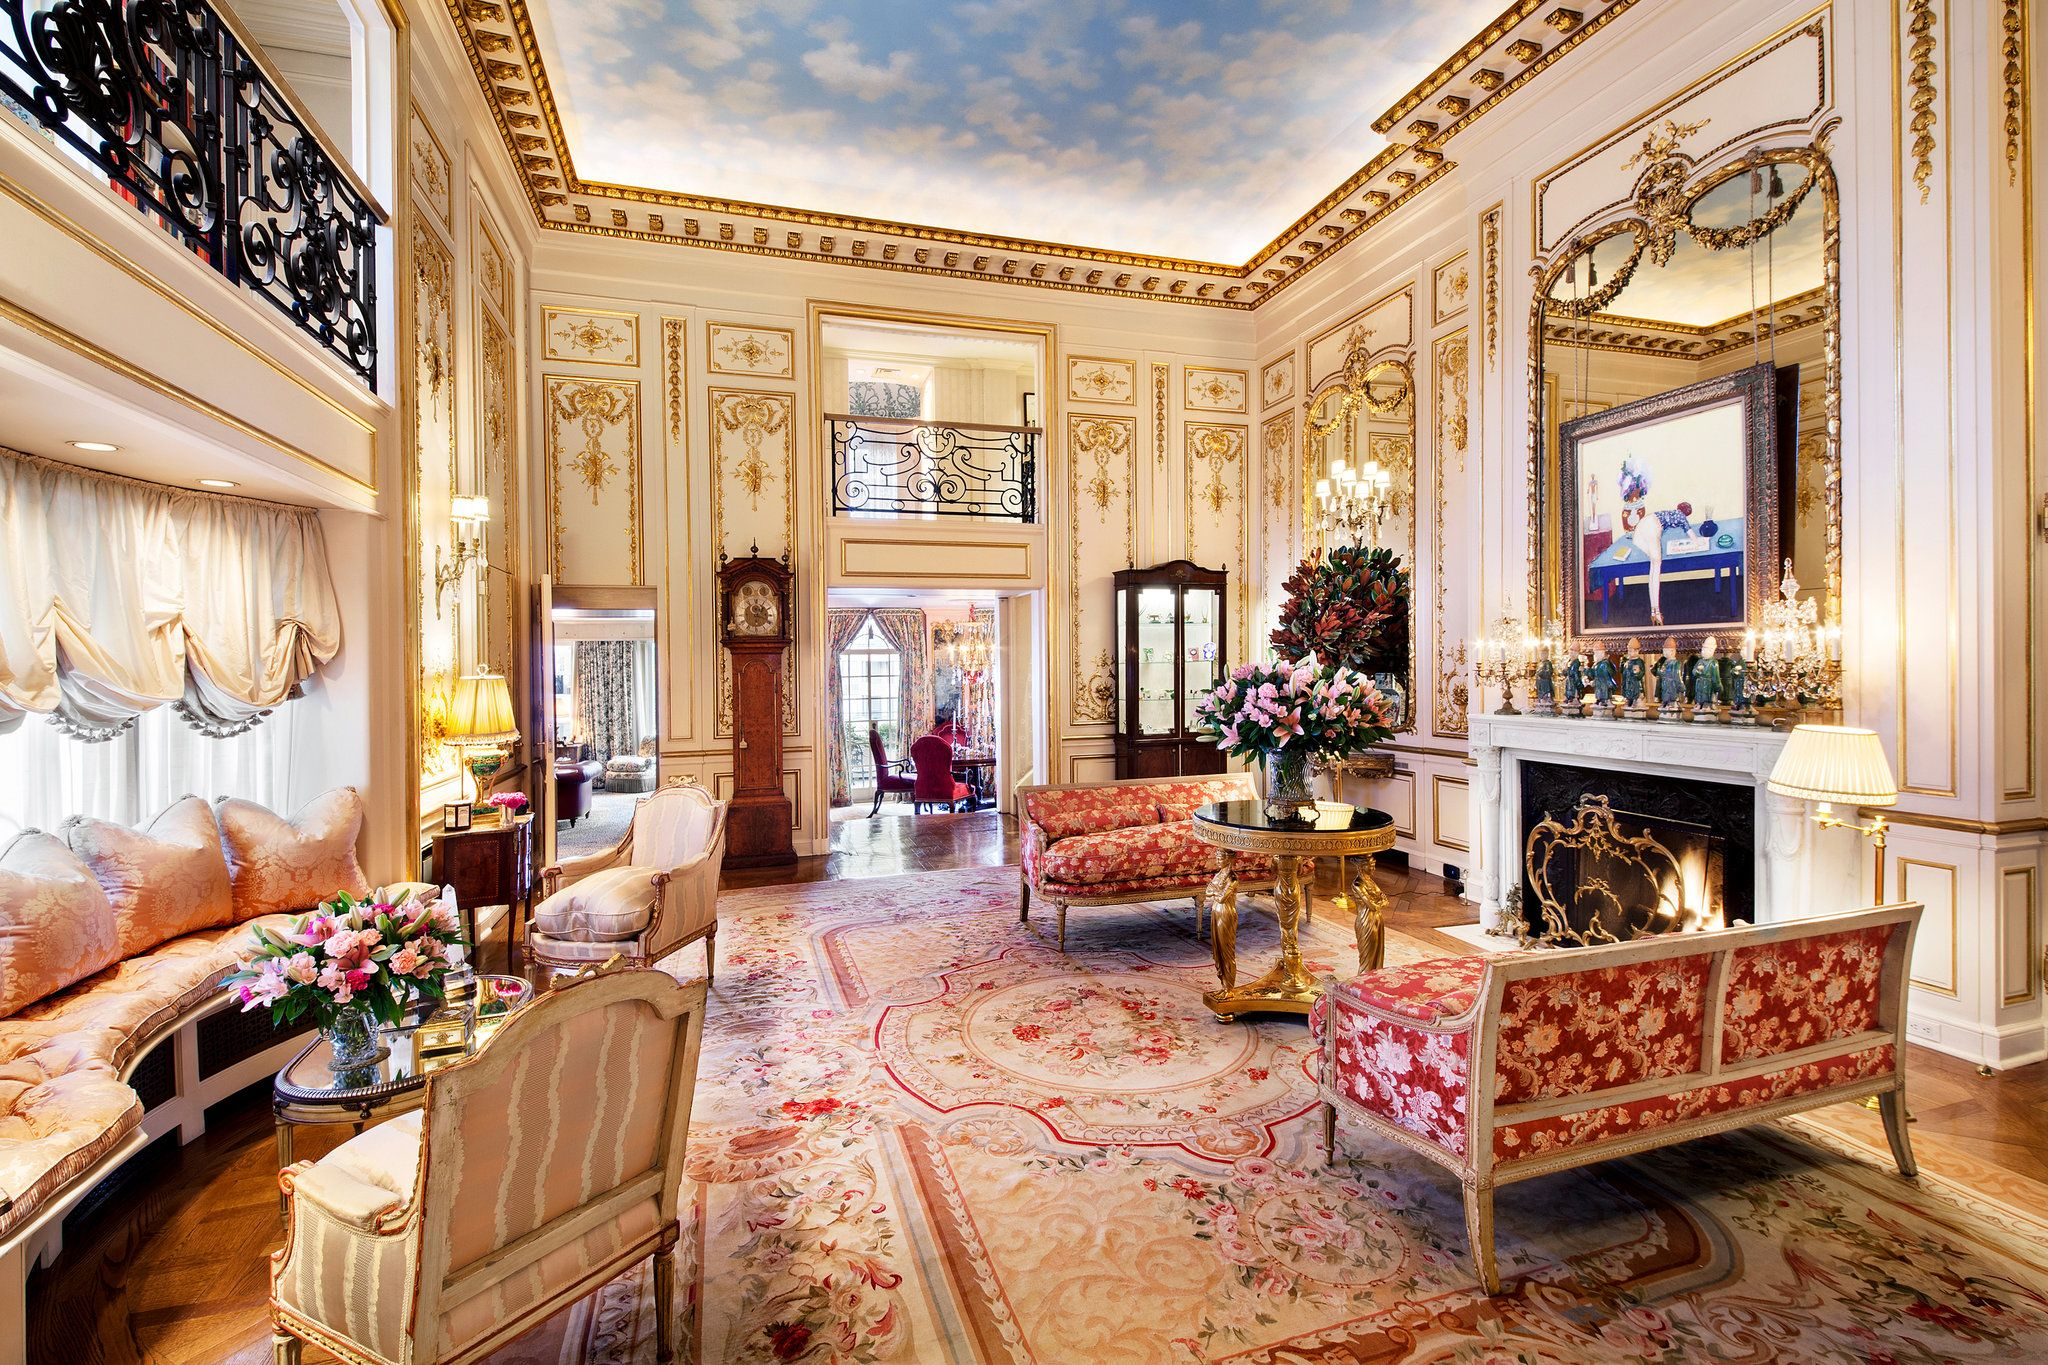 Penthouse Owned by Joan Rivers Sold for $28 Million - The New York Times